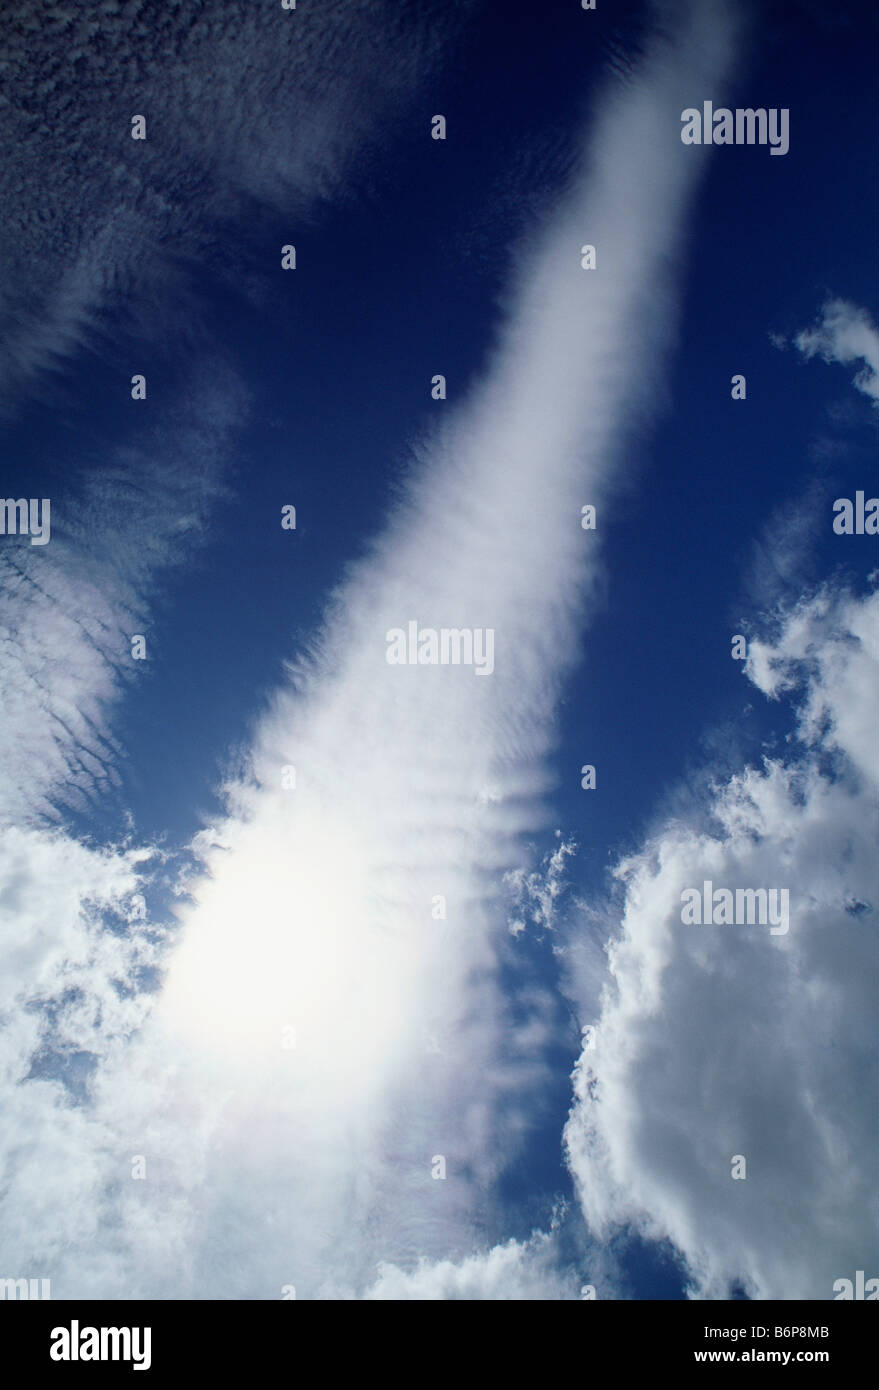 Dramatic white clouds against a blue sky - Stock Image